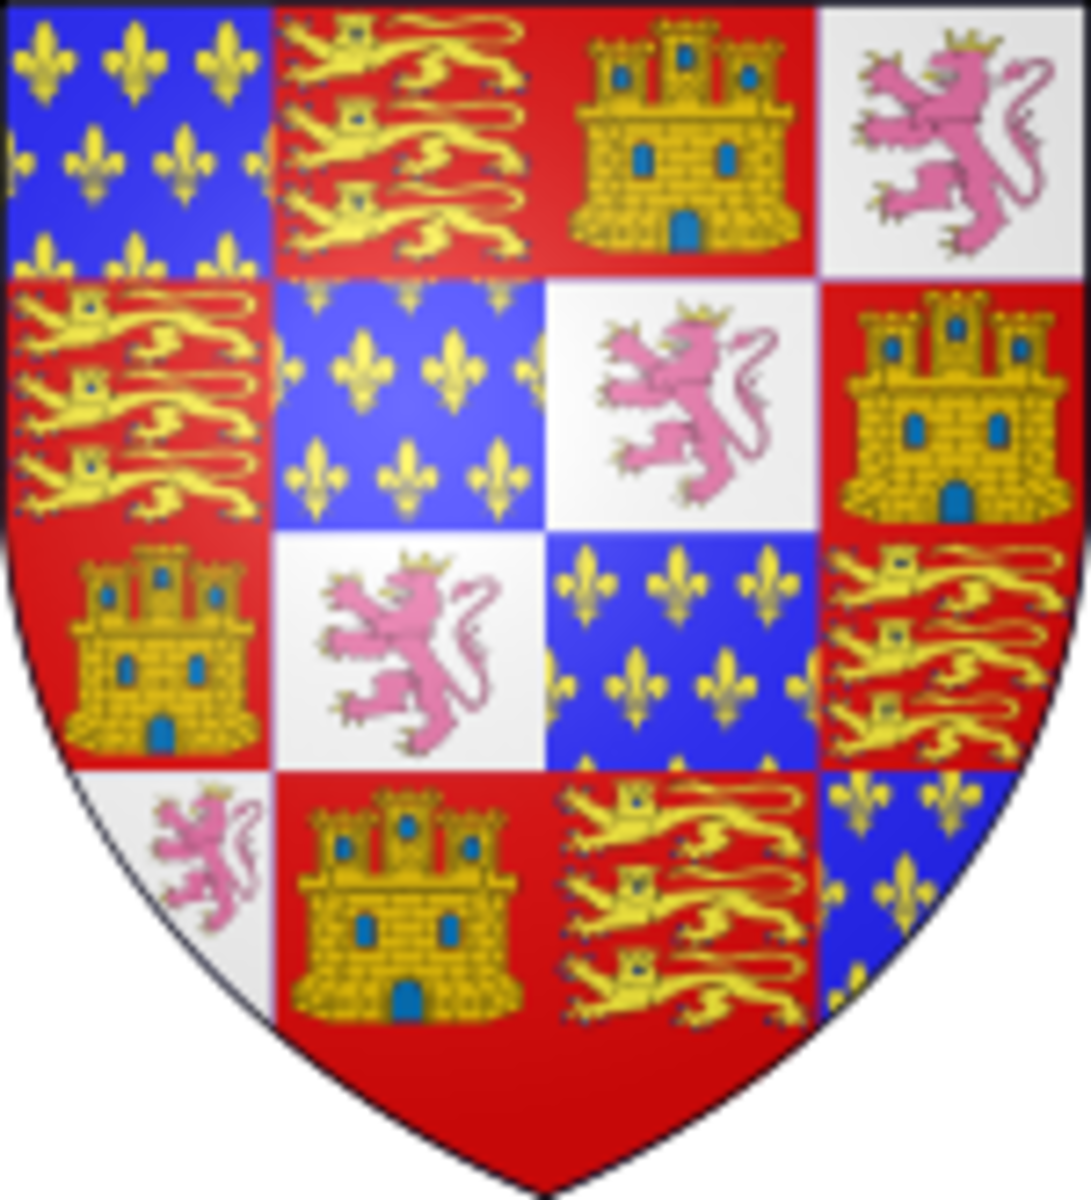 John of Gaunt's coat of arms, after he married Constance of Castile. In it, he asserts his rights to Castile and Leon.